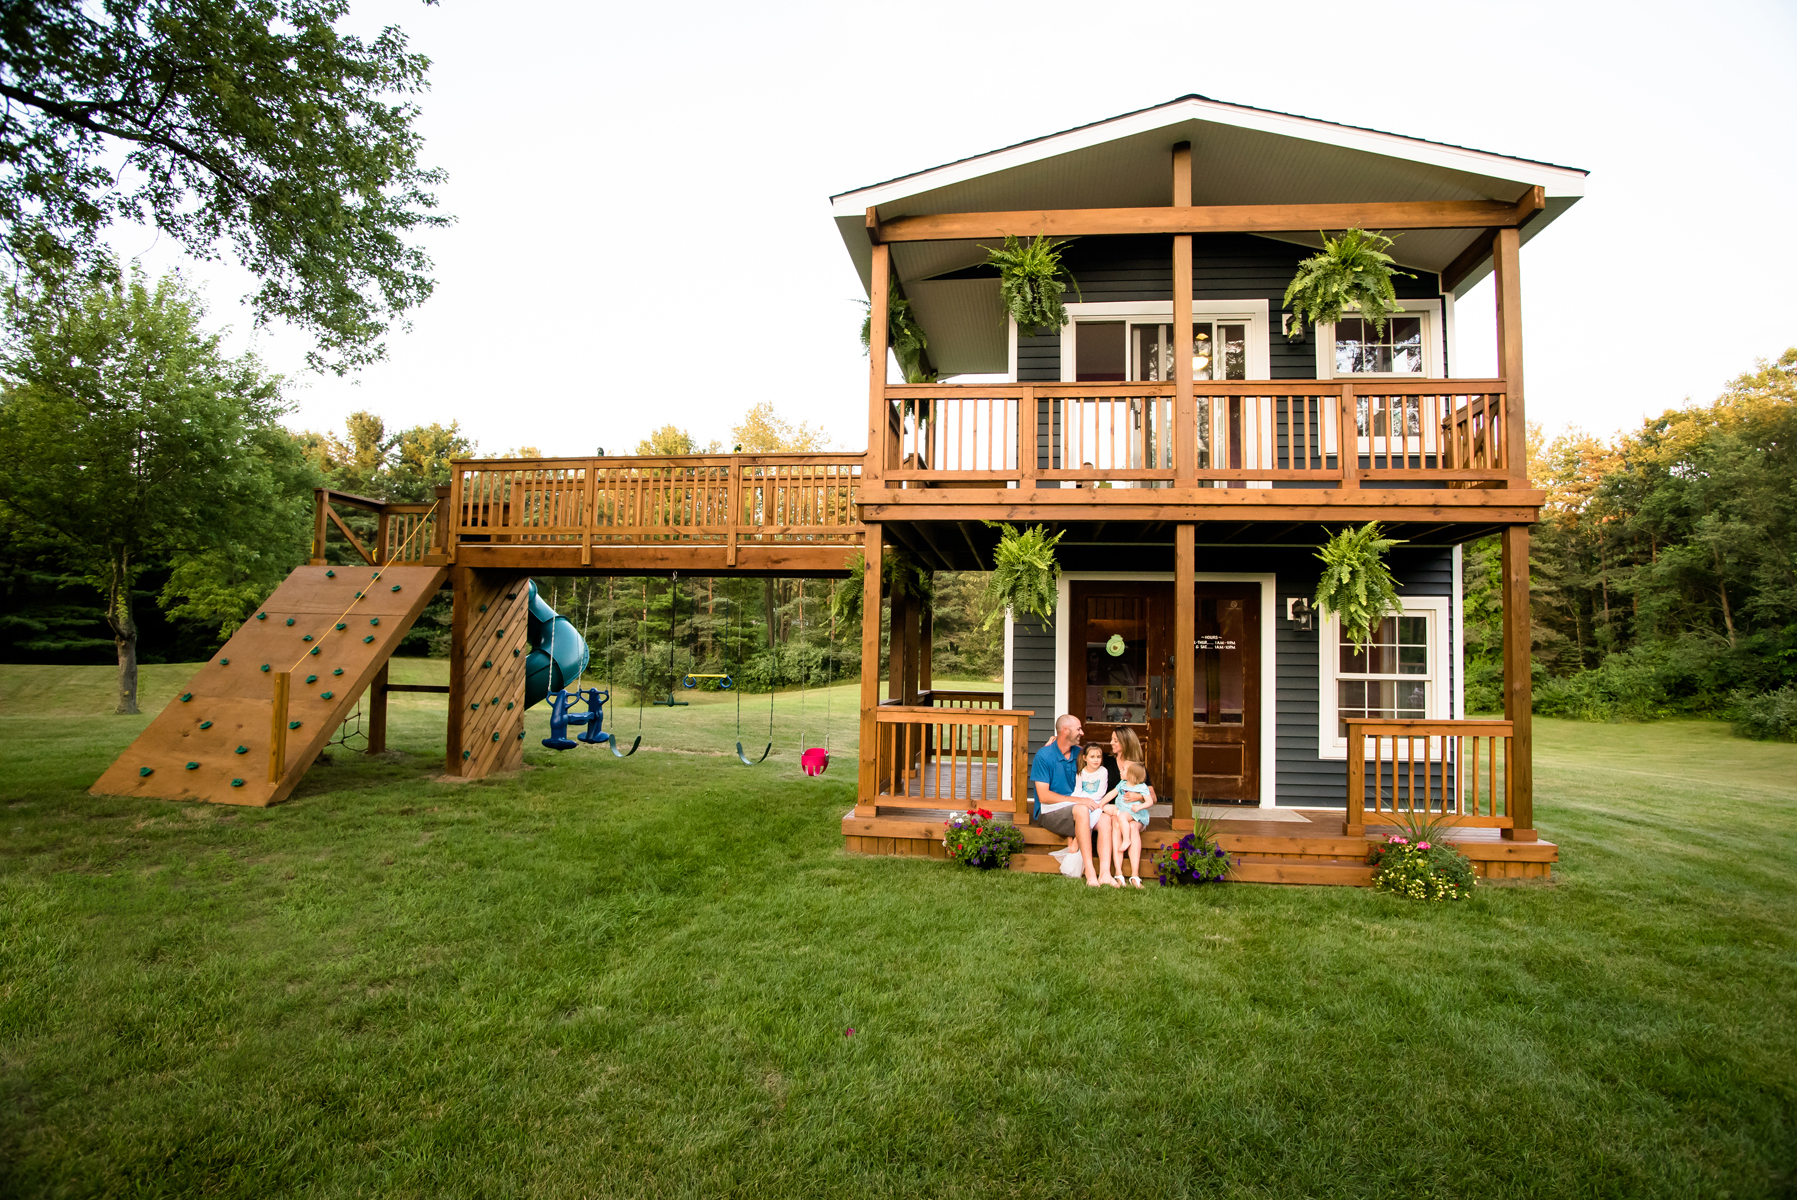 Details:   · 42' wide, 22' tall   · Drywall   · Insulation   · Real windows   · Off-the grid electrical      -Low voltage electrical powered by solar panel Painted   · 5/4 treated decking for wrap-around porch   · Treated handrail   · Bridge   · Rock climbing wall   · Swing set   · Standard height door   · Cherry live edge lumber and table  Price:   · $55,000, labor and material, for exact duplicate of the original Spoiled Rotten Homes playhouse   · Price does not include taxes and shipping   · Shipping cost varies based on location   · Playhouse can be built on-site if location is within 1 hour of Spoiled Rotten Homes  Disclaimer: if playhouse is being shipped, we recommend all painting be done at final location to prevent shipping damage.  We take great pride in the structural integrity and uniqueness of our playhouses.All of our models are built just like a real house – full scale, 8-foot ceilings, and can be re-purposed into a guest house, she-shed, or man-cave when the kids are all grown up and moved out!Our playhouses stand the test of time!